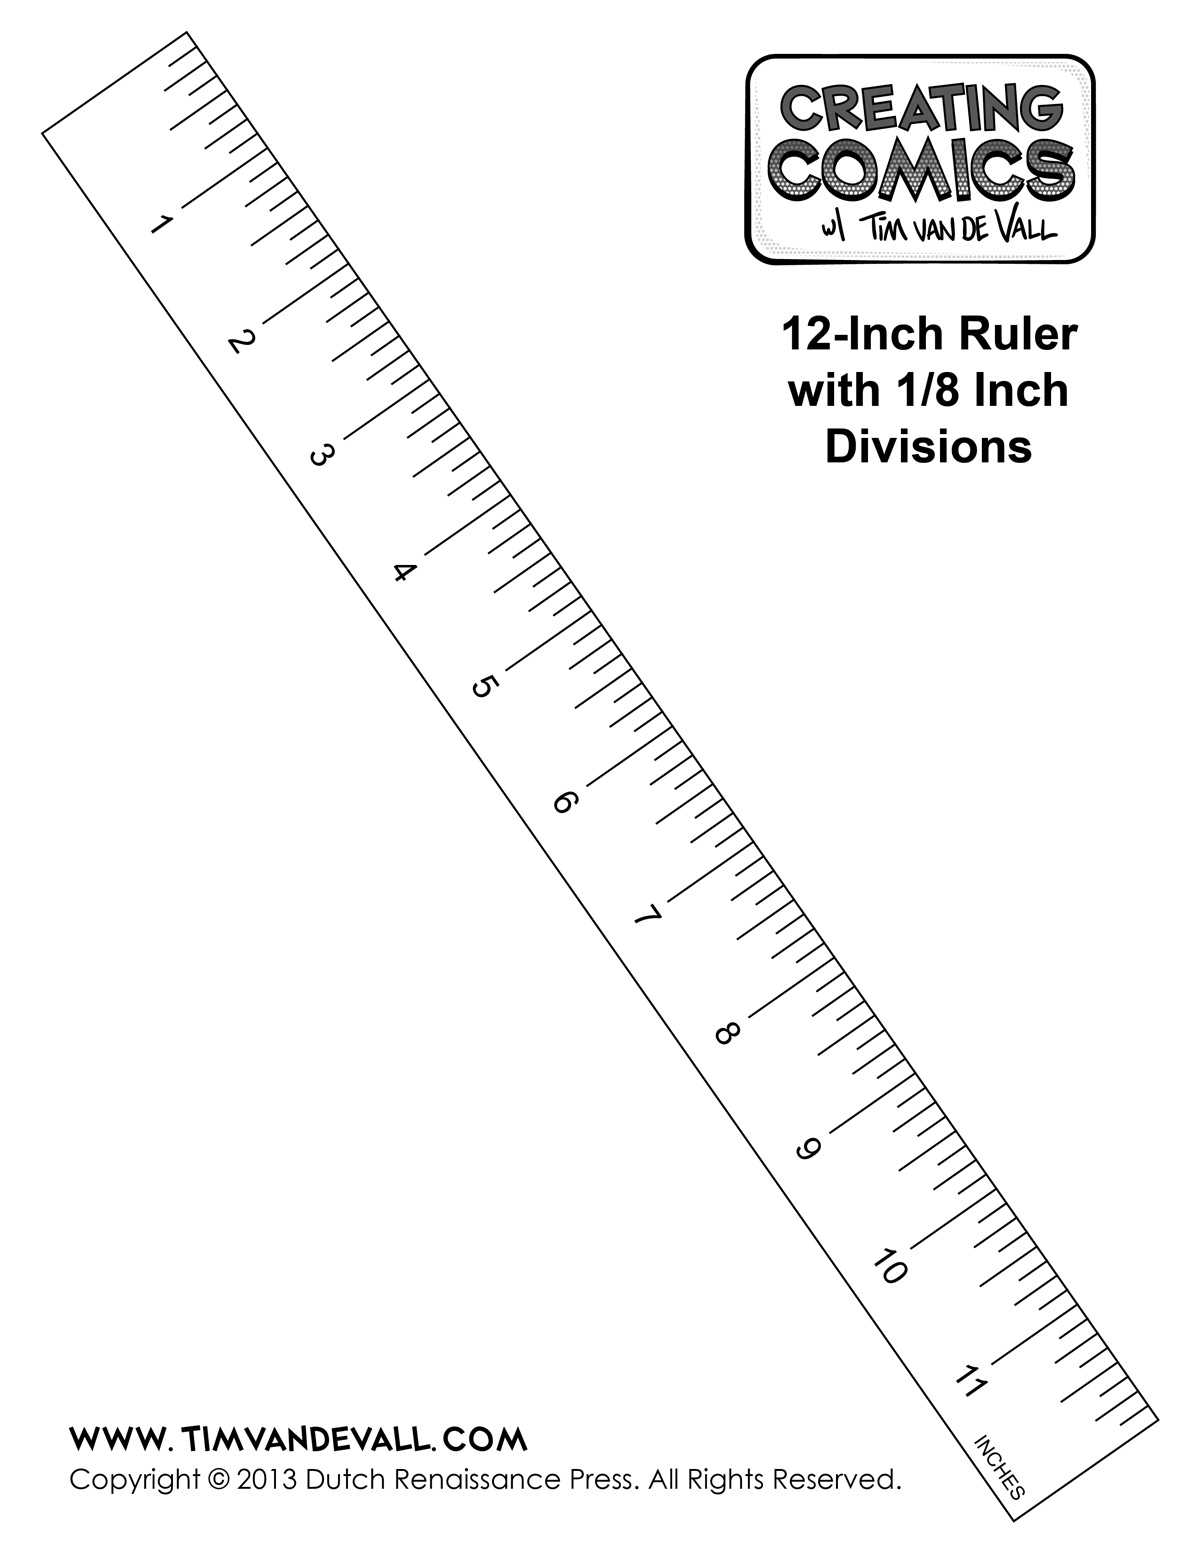 Printable Ruler Template in Inches – Creating Comics